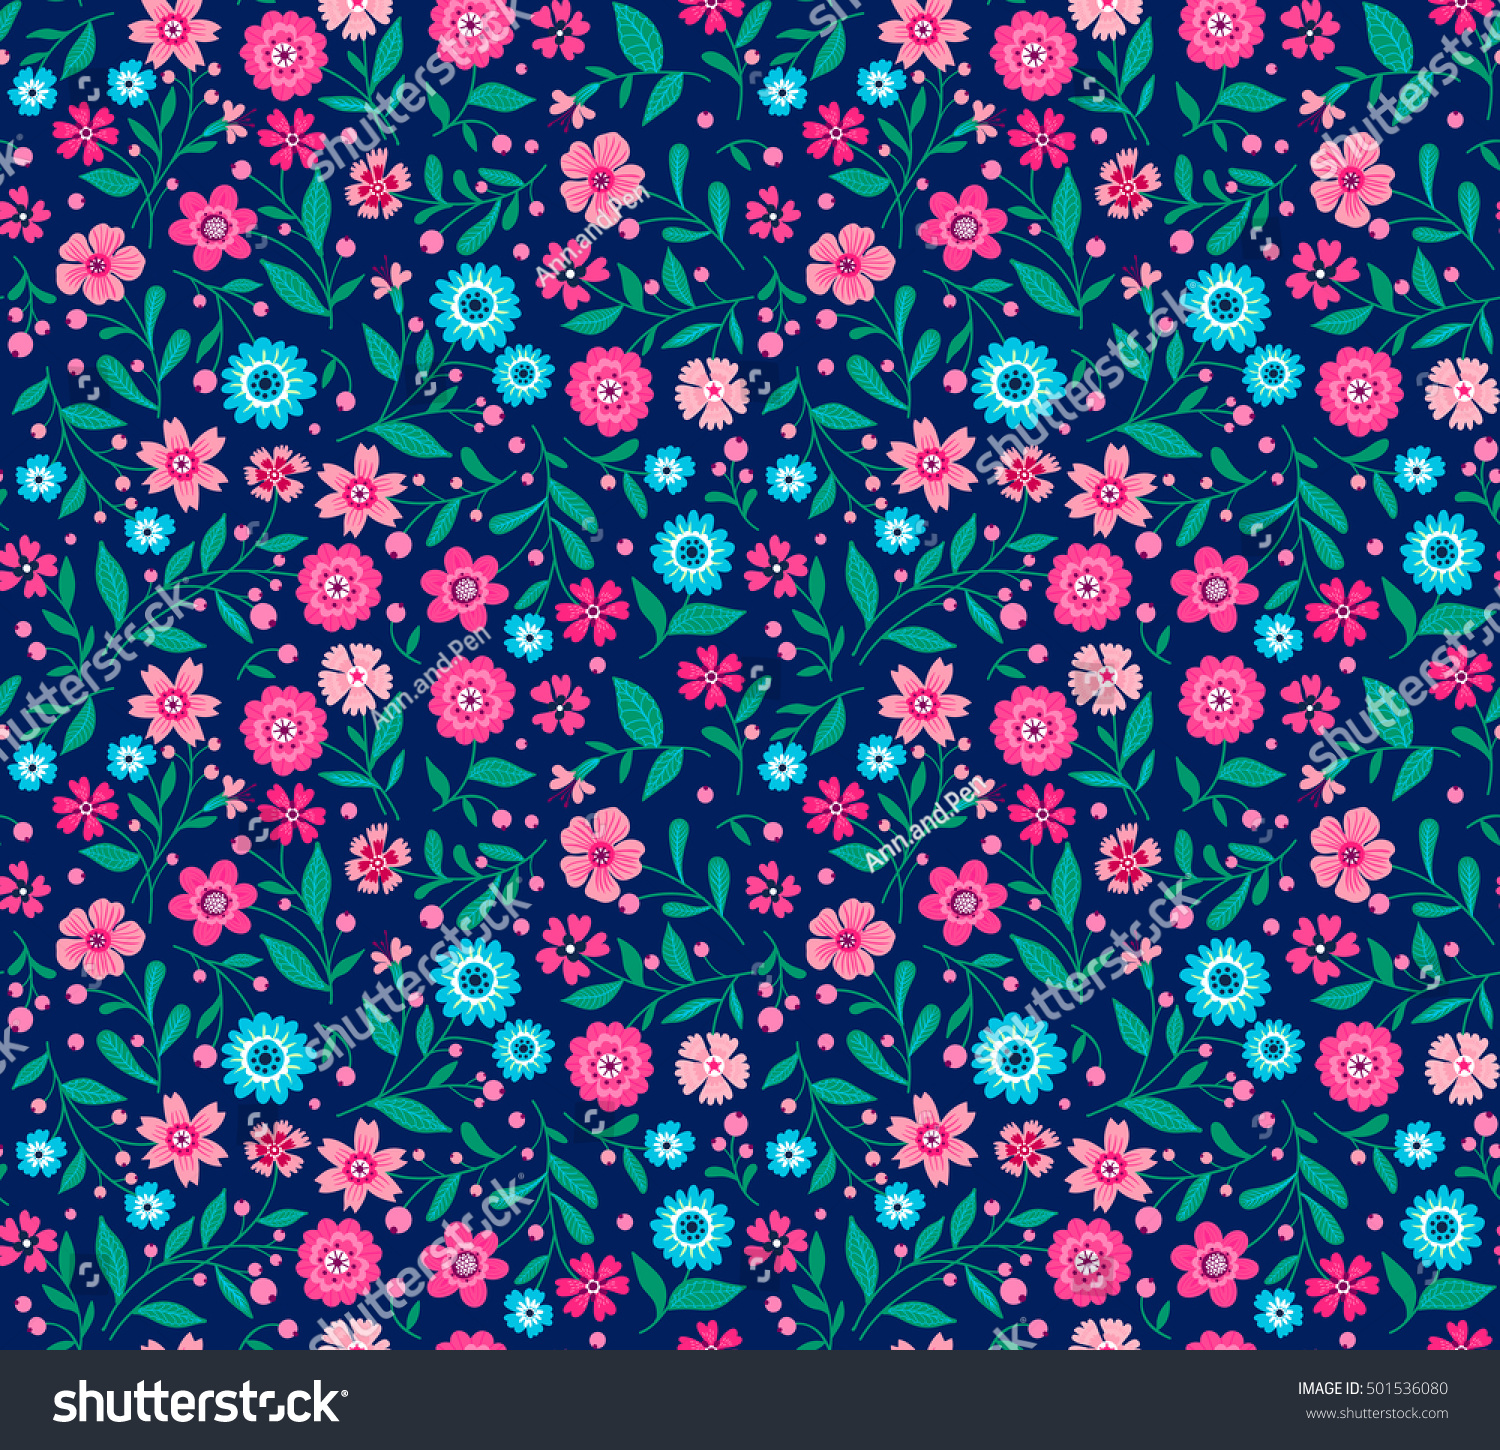 Cute Seamless Pattern In Small Flower Small Pink And Blue Flowers